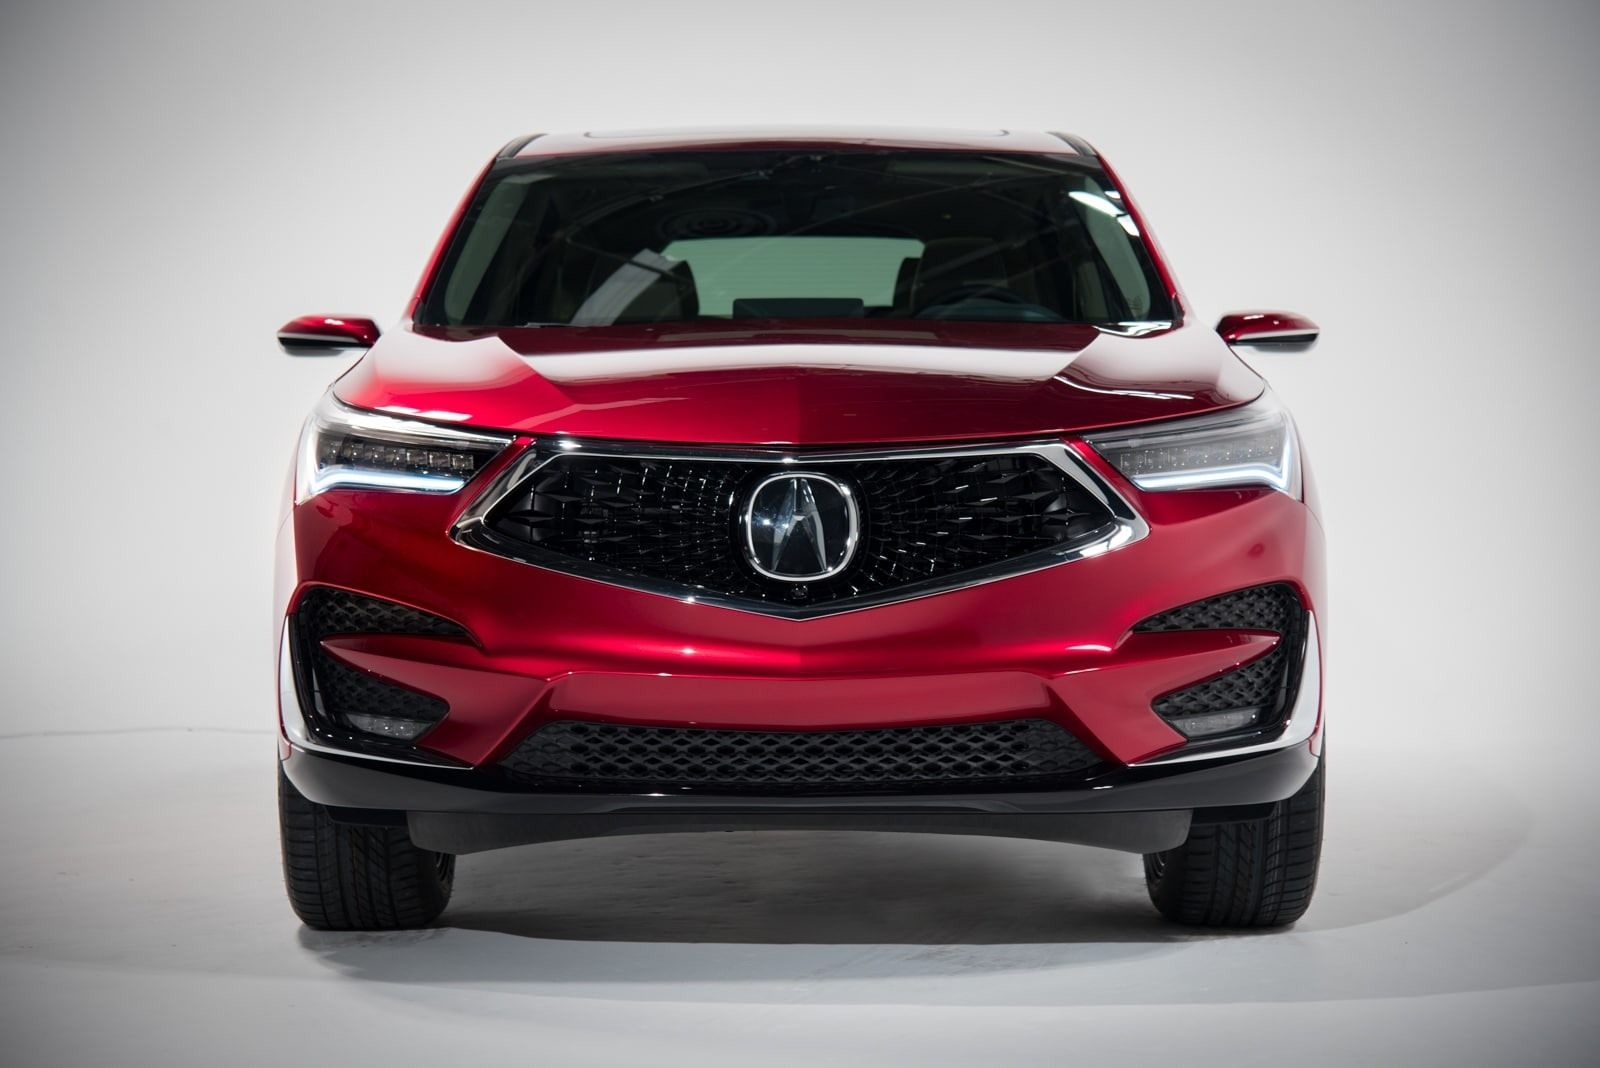 Acura Ilx 2019 Review Specs And Release Date Acura Ilx Acura Acura Mdx